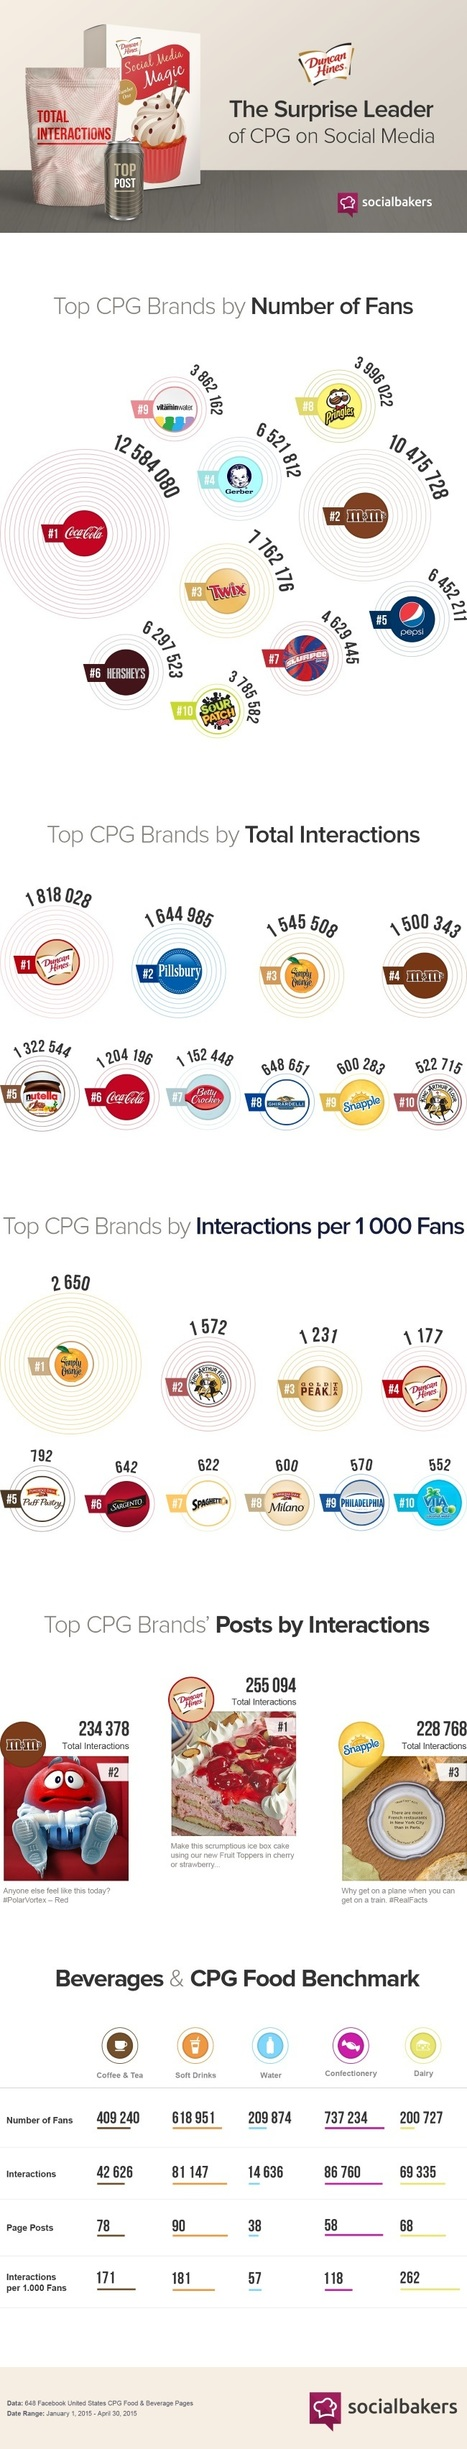 Duncan Hines is Facebook's Top CPG Brand #Infographic | Social Media & e-Marketing | Scoop.it